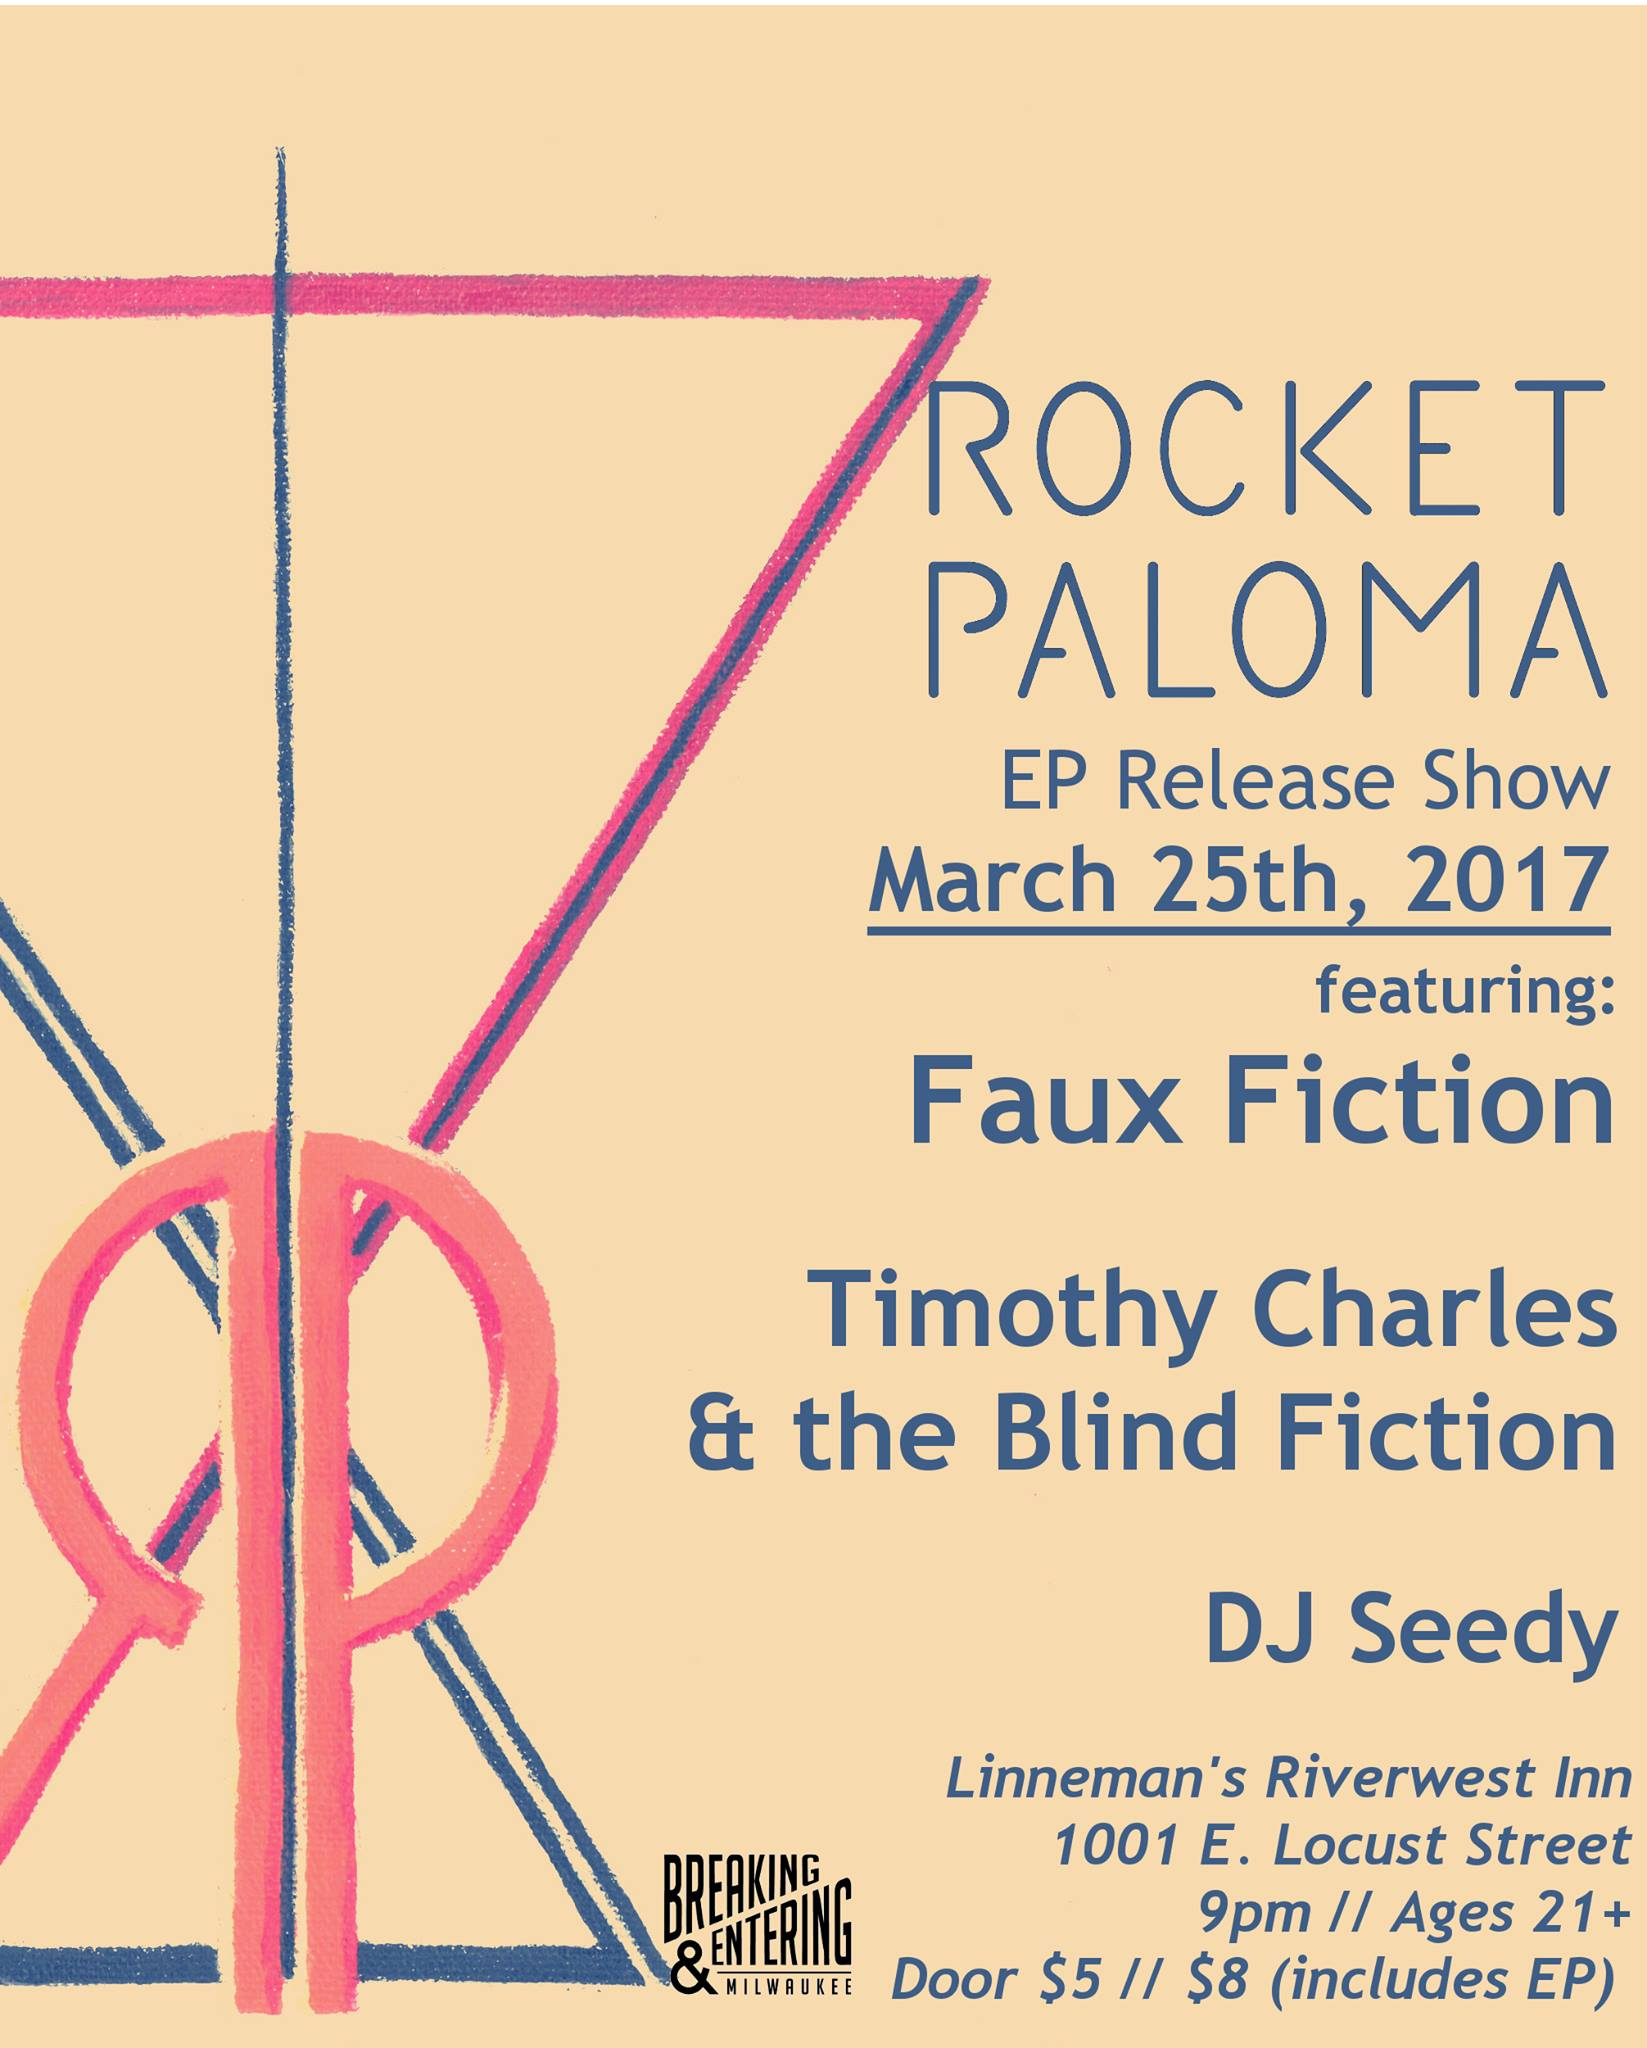 Rocket Paloma EP Release